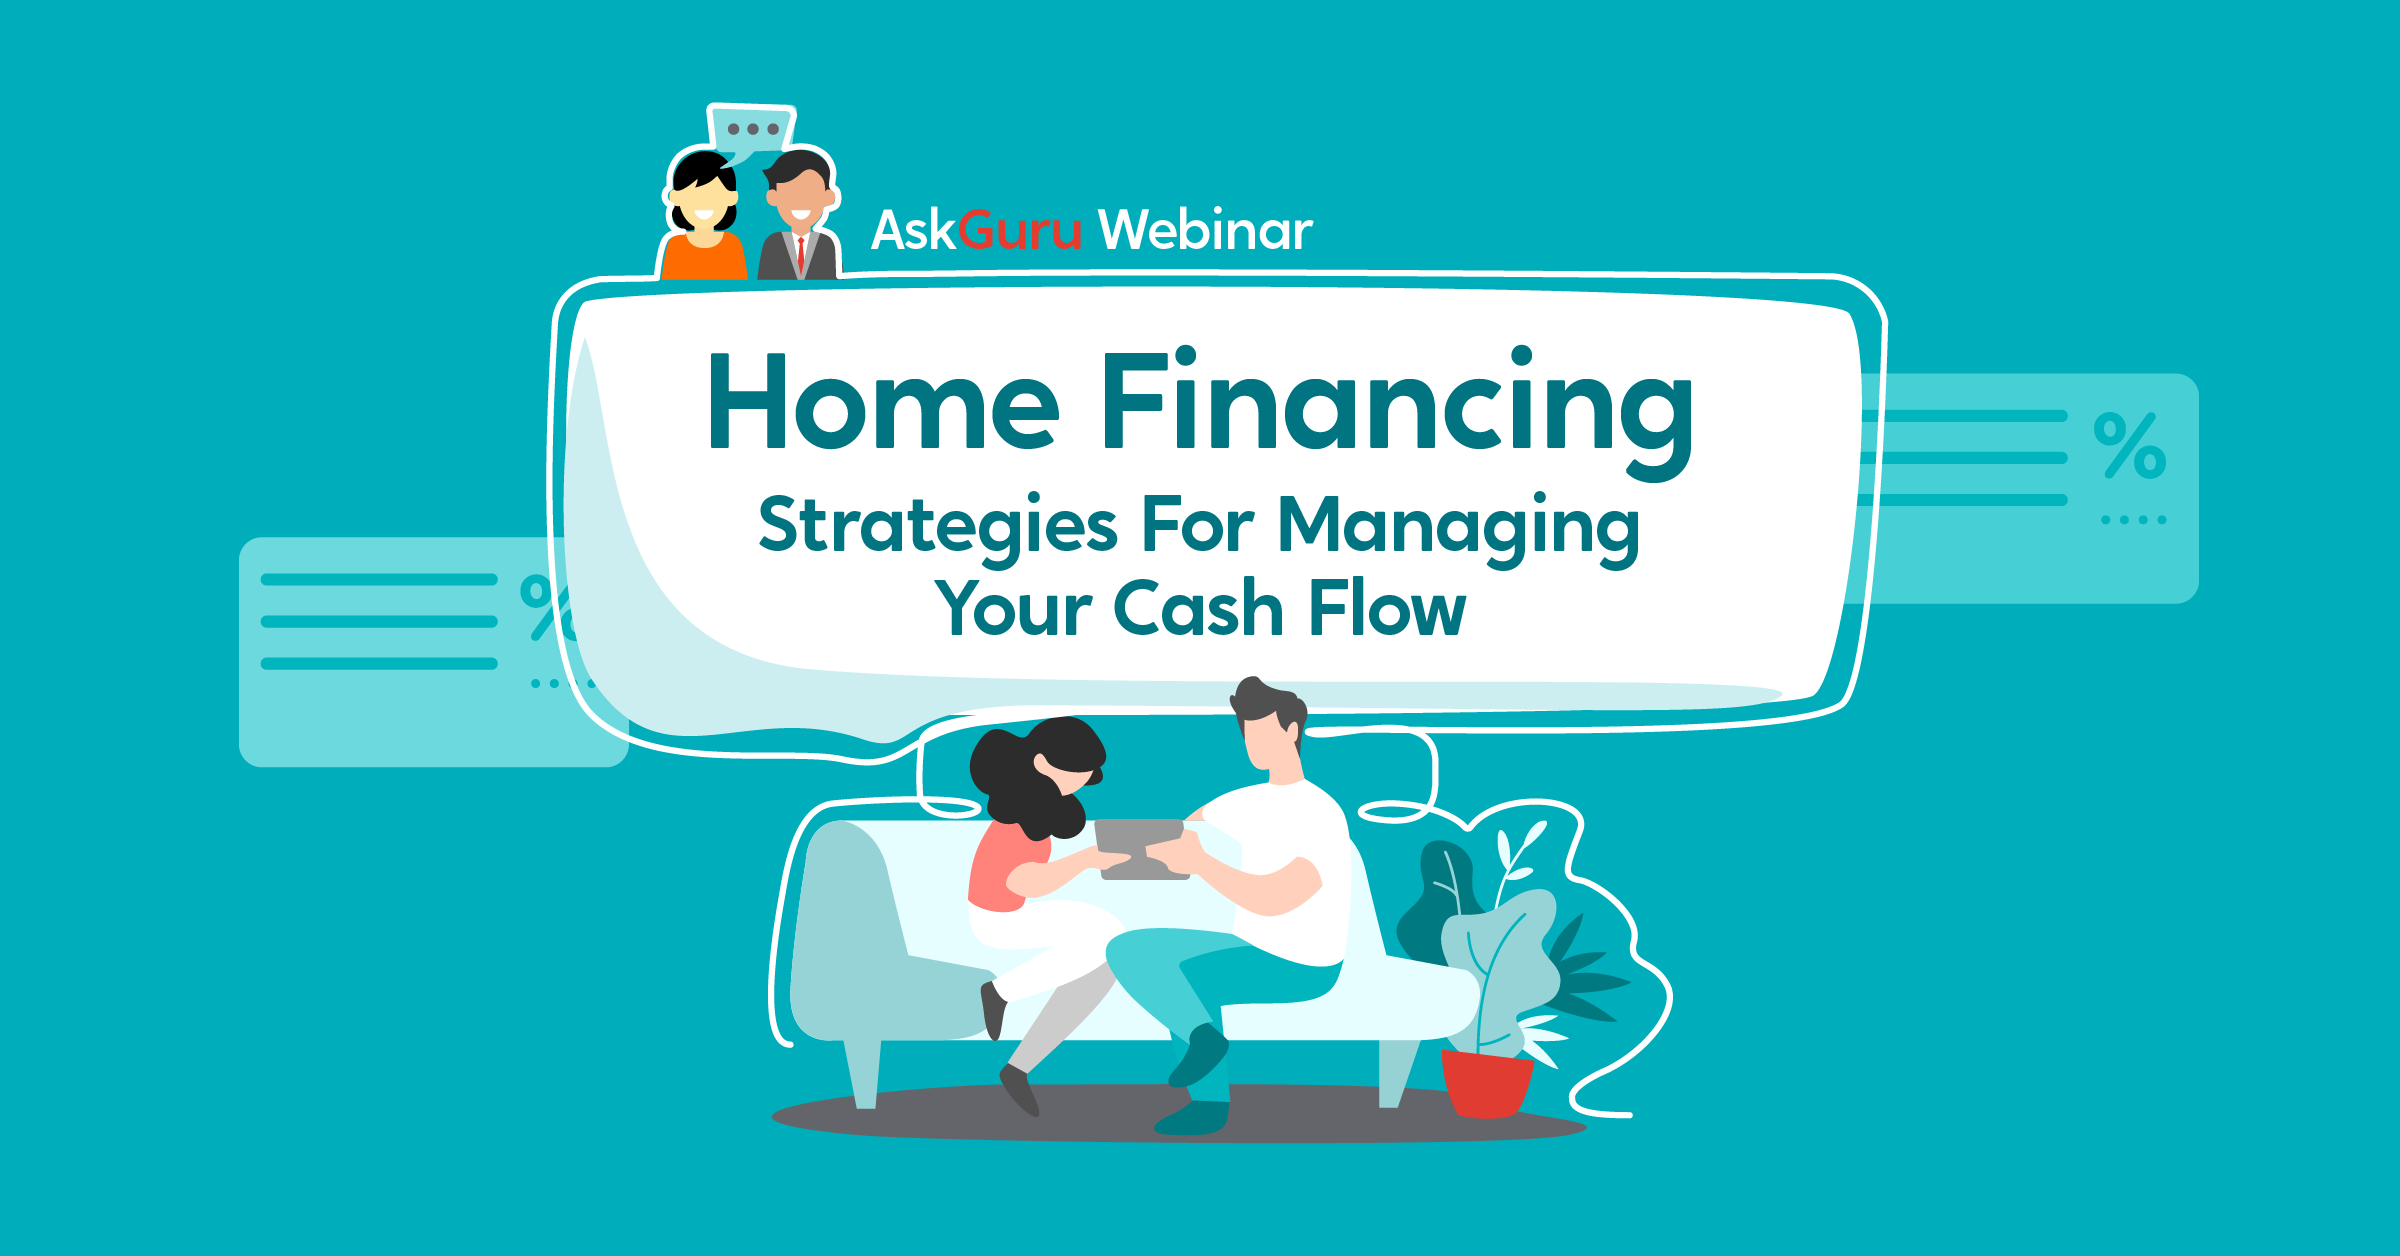 Home Financing Strategies For Managing Cash Flow Amidst COVID-19 Pandemic